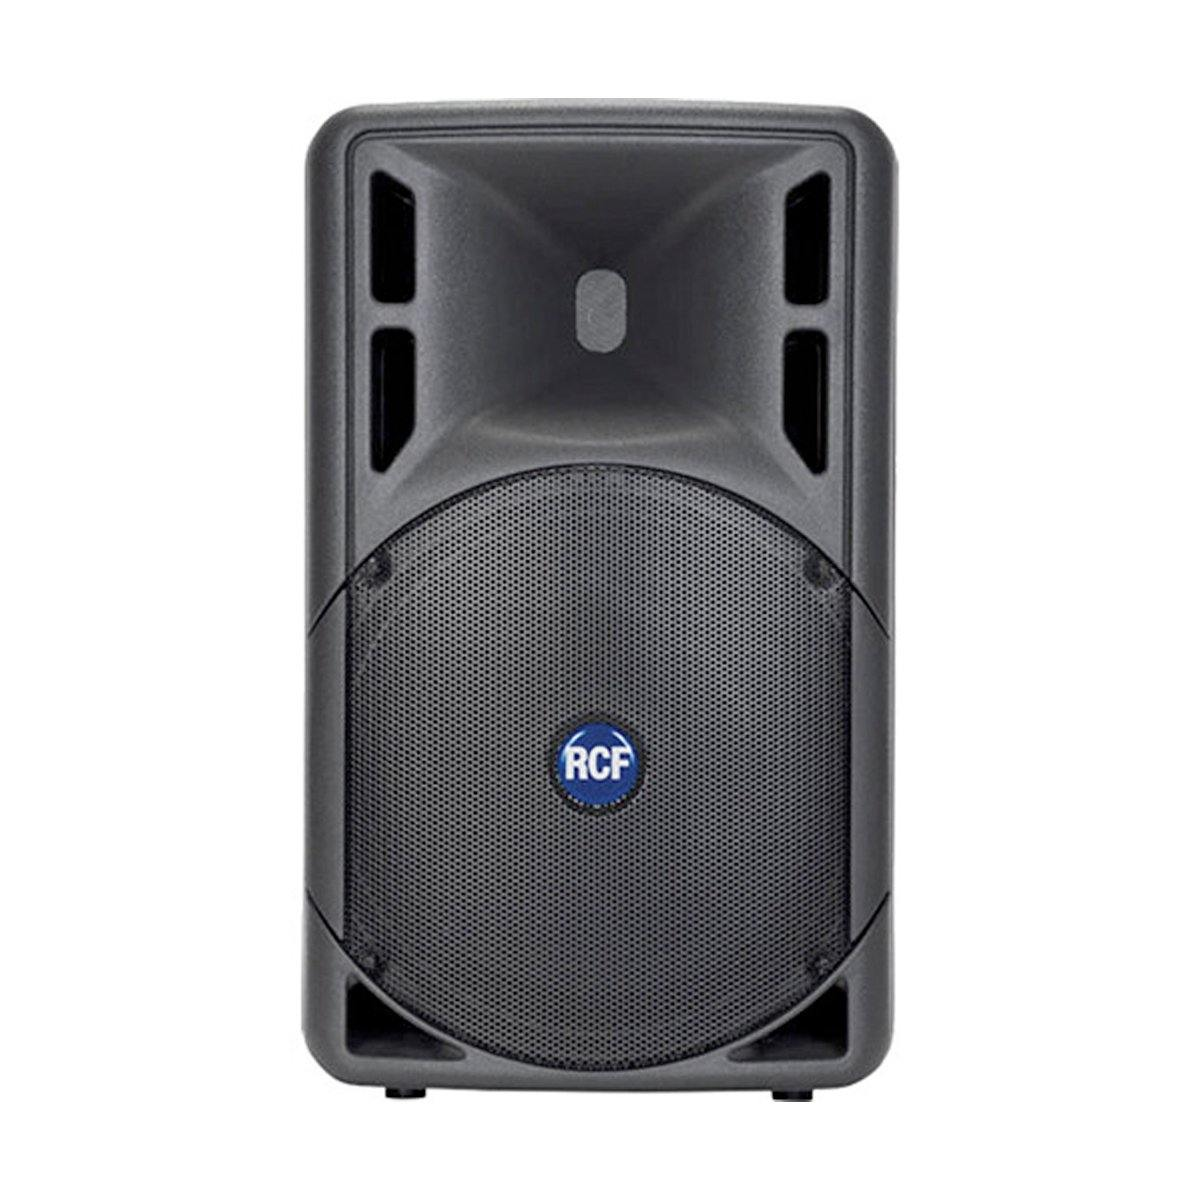 "RCF ART312A 12"" Active Reference Speaker - ICONS Shop"